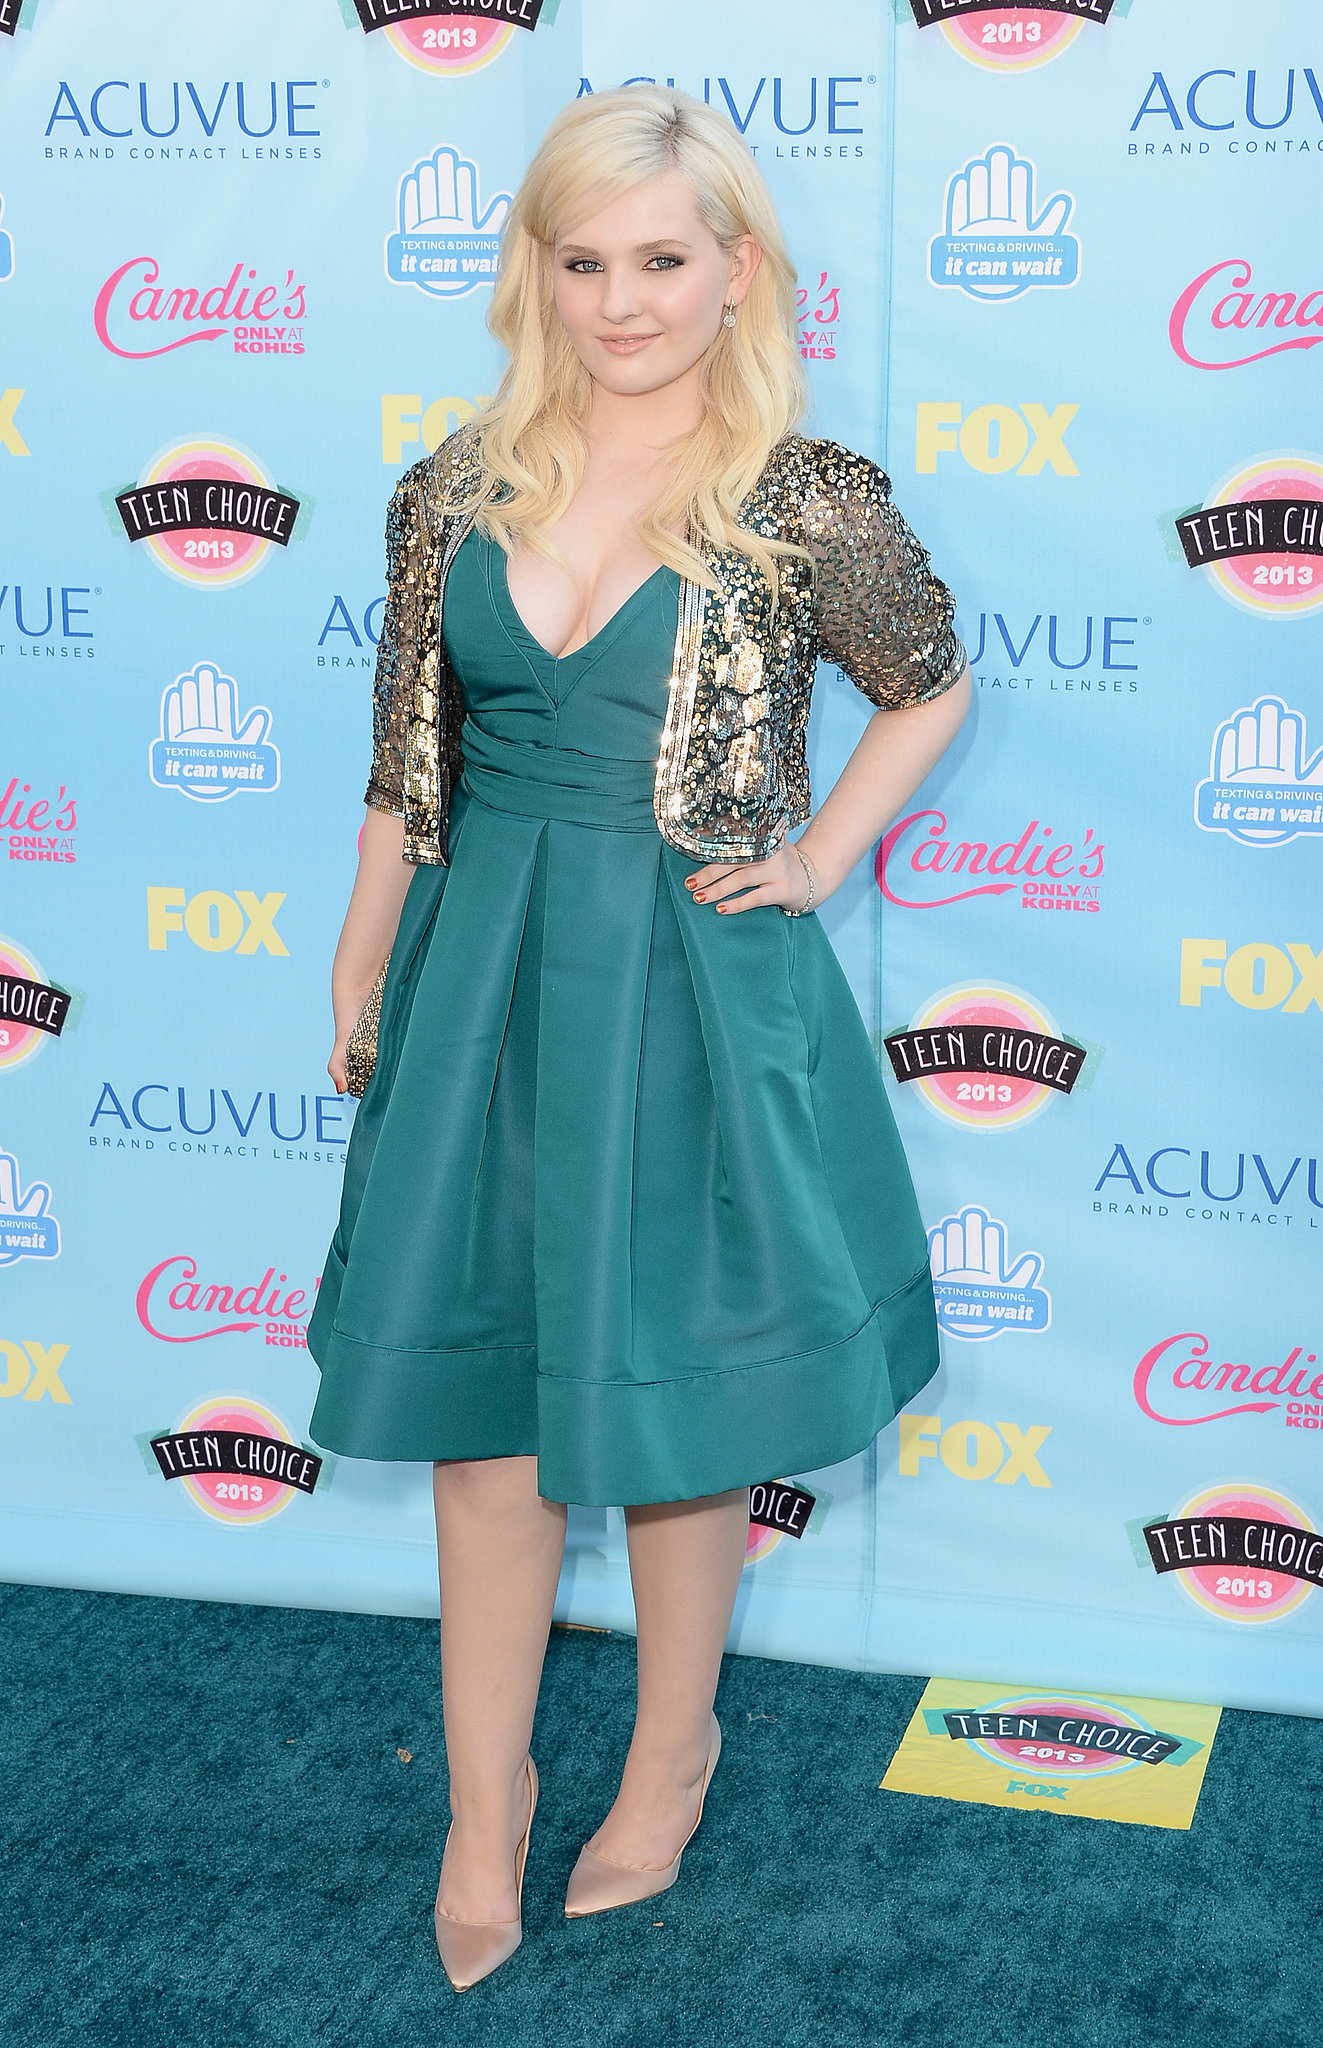 Abigail Breslin coordinated her party dress with the carpet and added a sparkly cardigan.